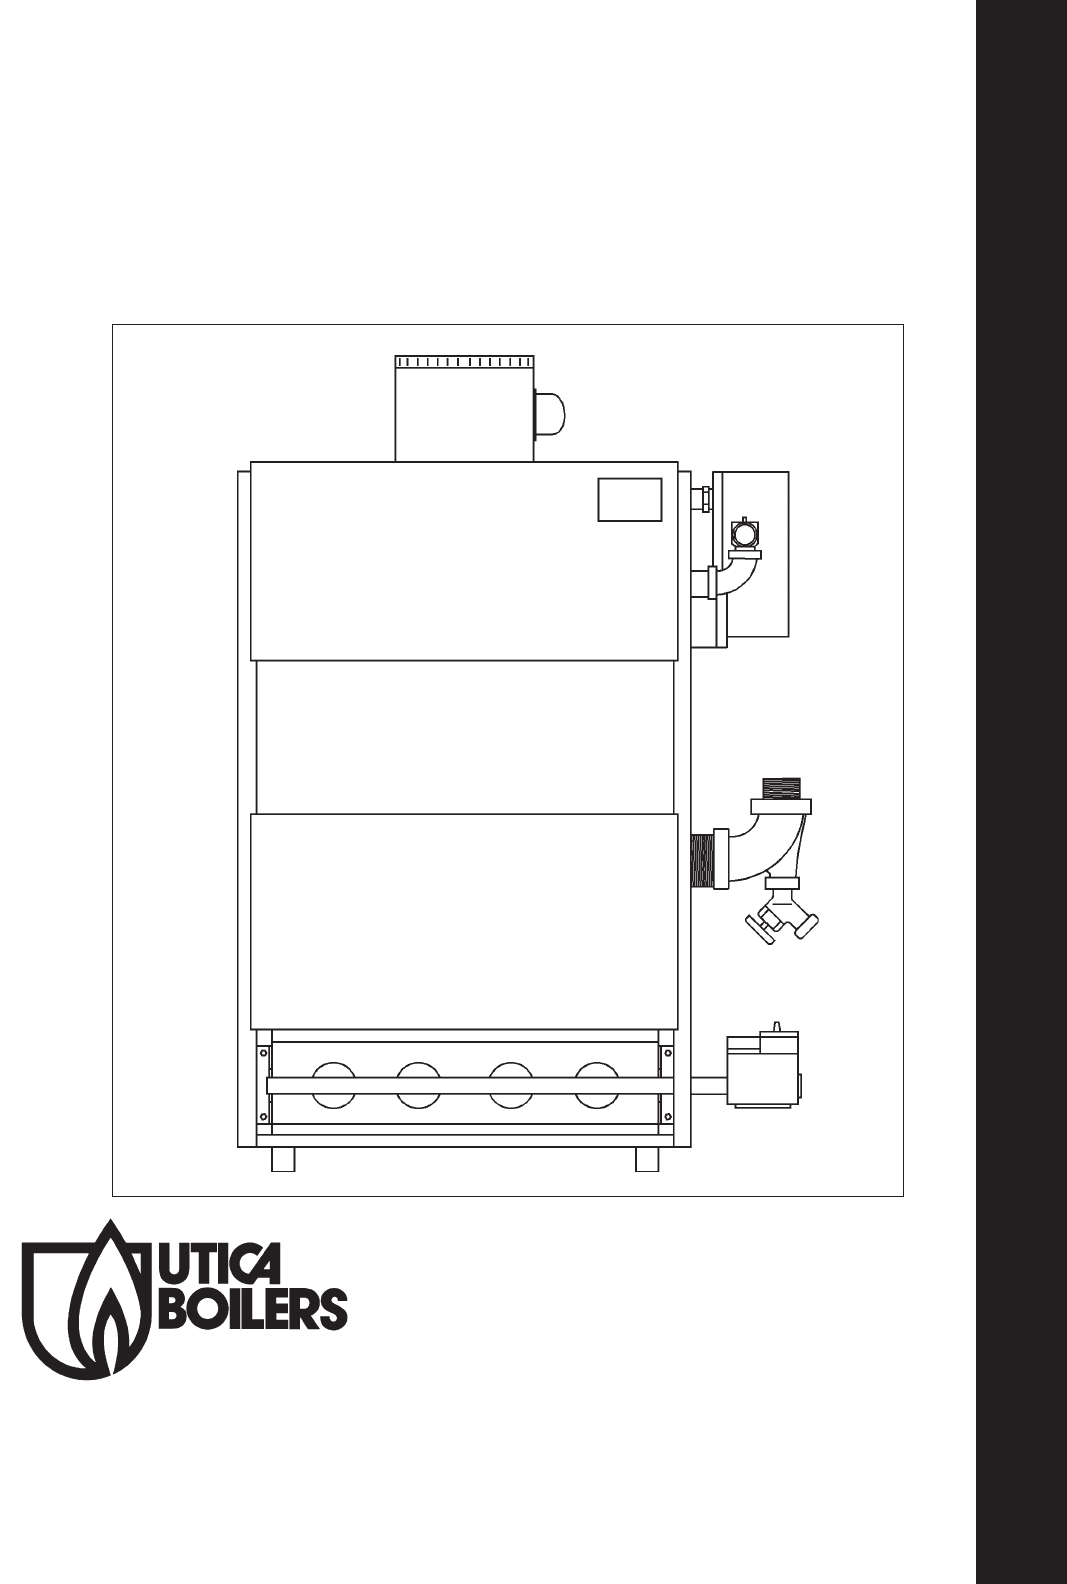 utica boiler gas fired boiler user guide manualsonline com Utica Boiler Water Supply Shut Off Valve